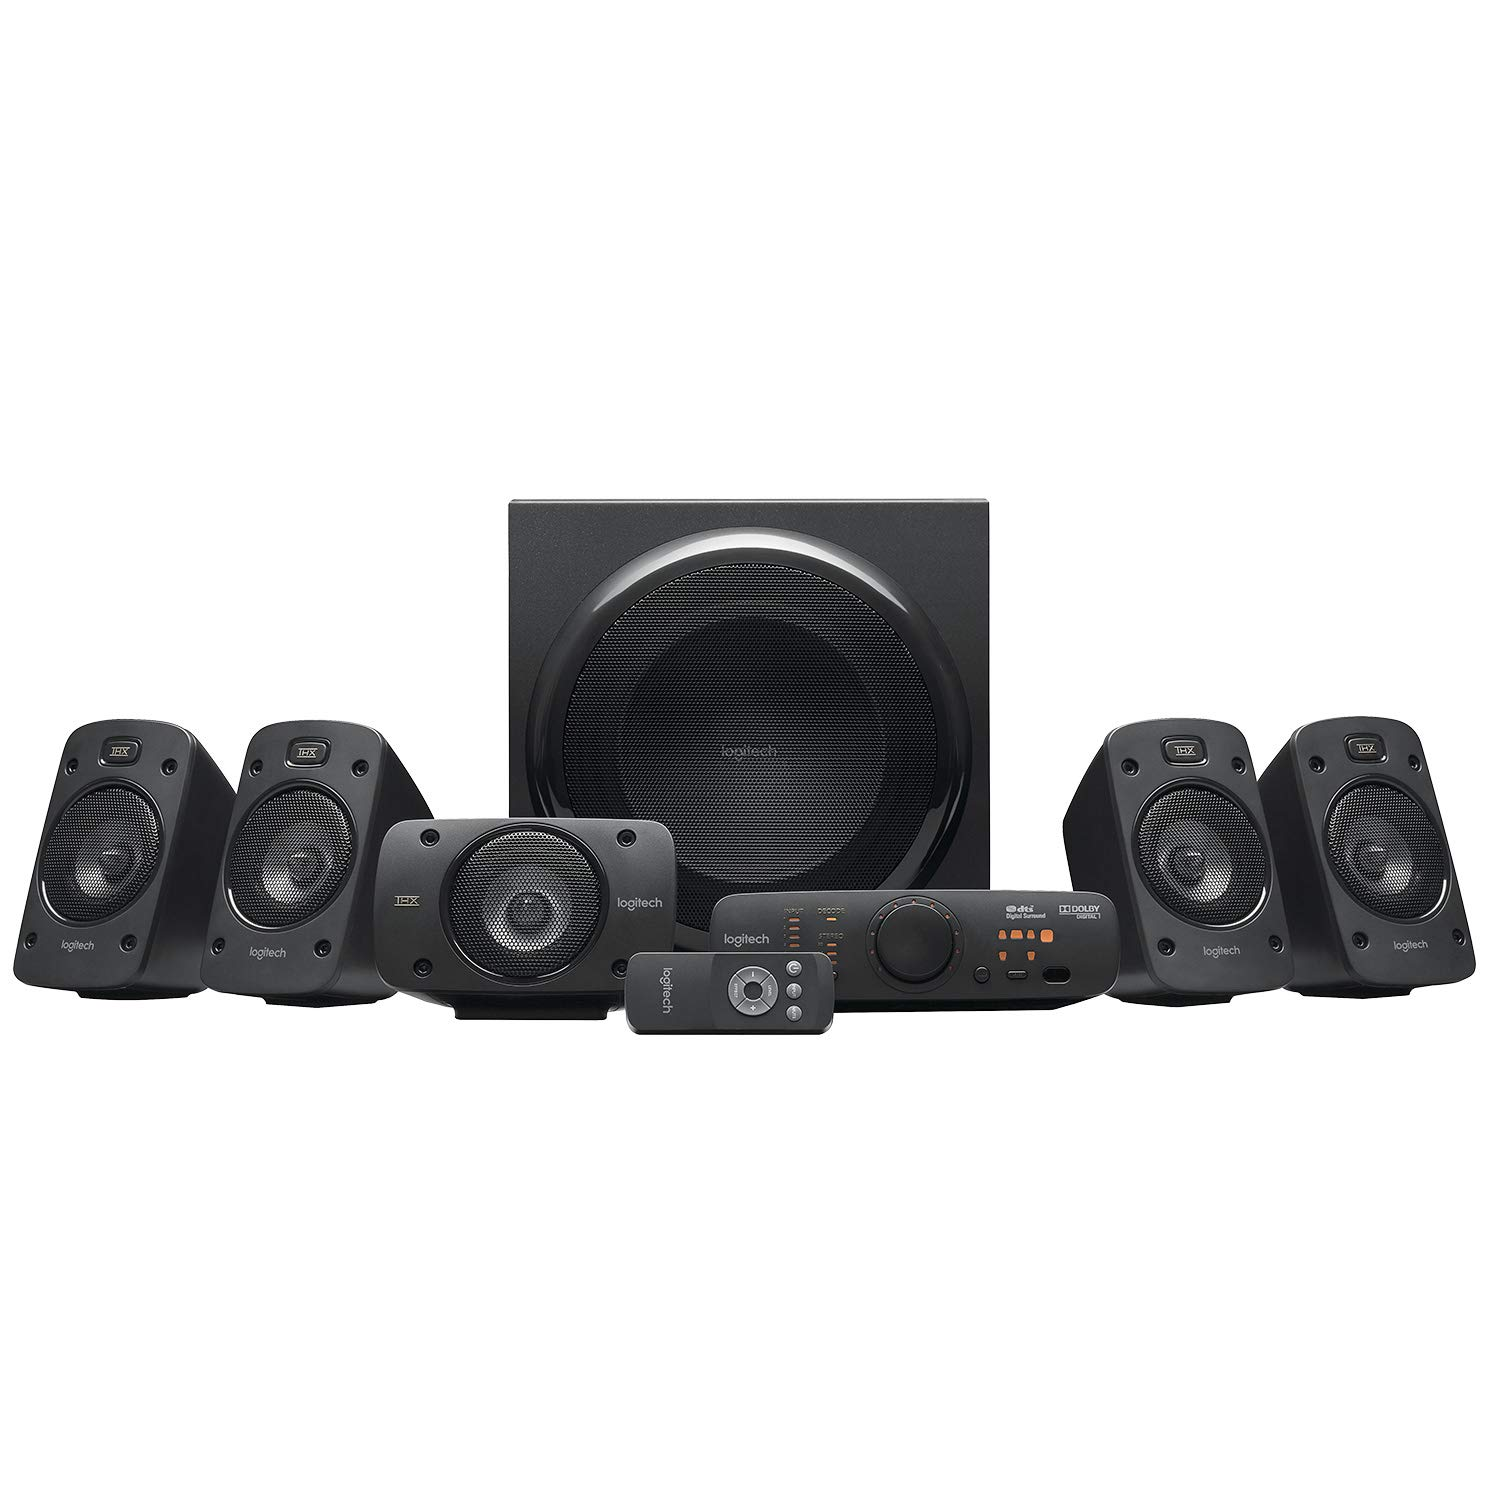 Schliessen sie 360 surround sound an